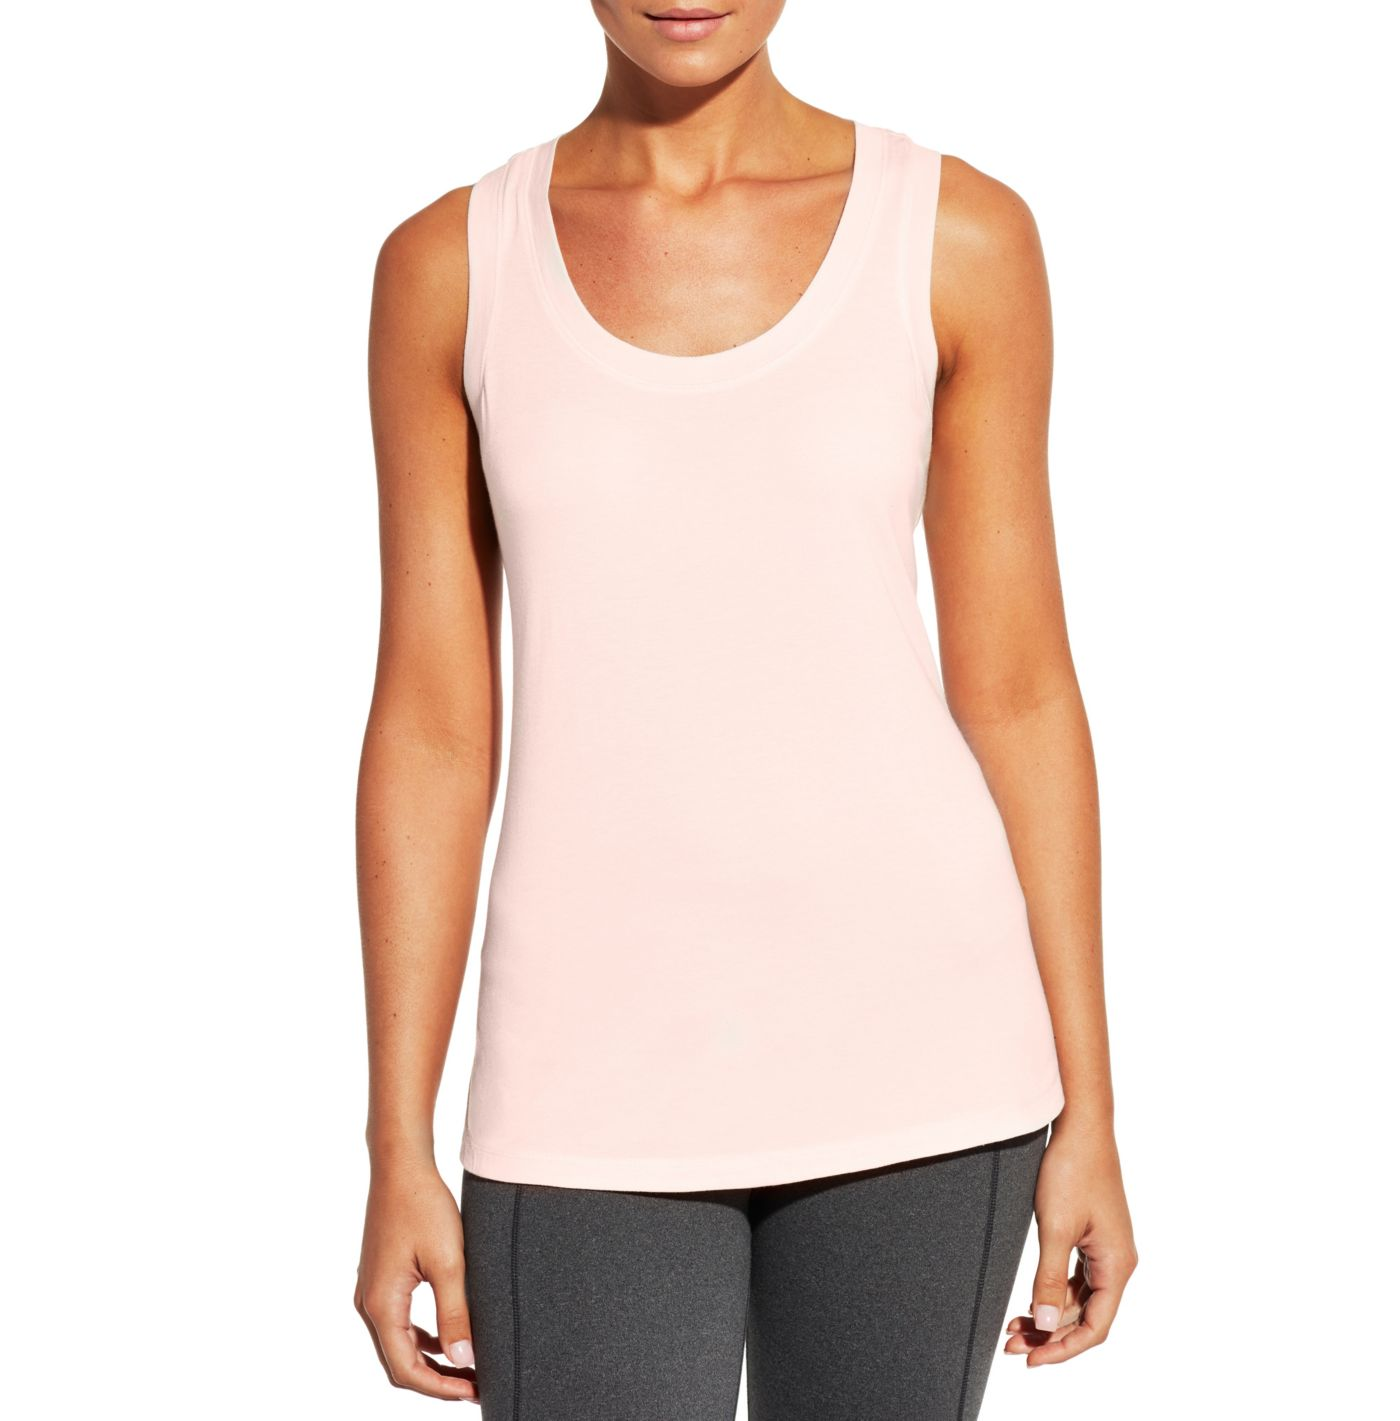 CALIA by Carrie Underwood Women's Everyday Tank Top